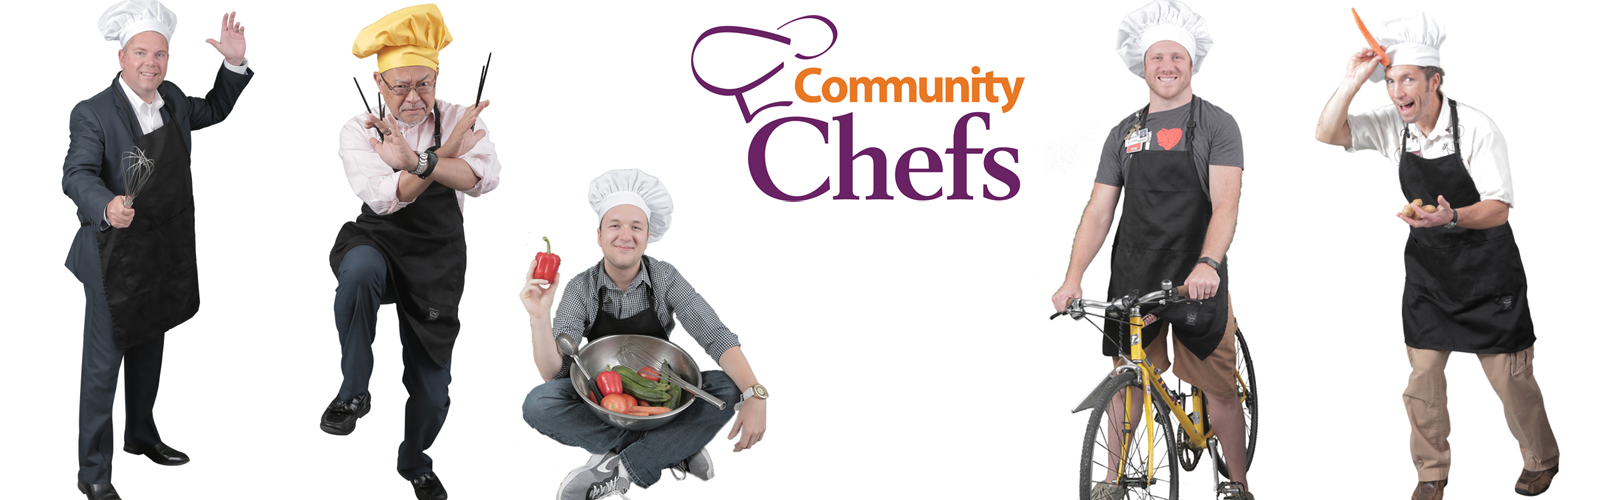 Community Chefs logo and chefs